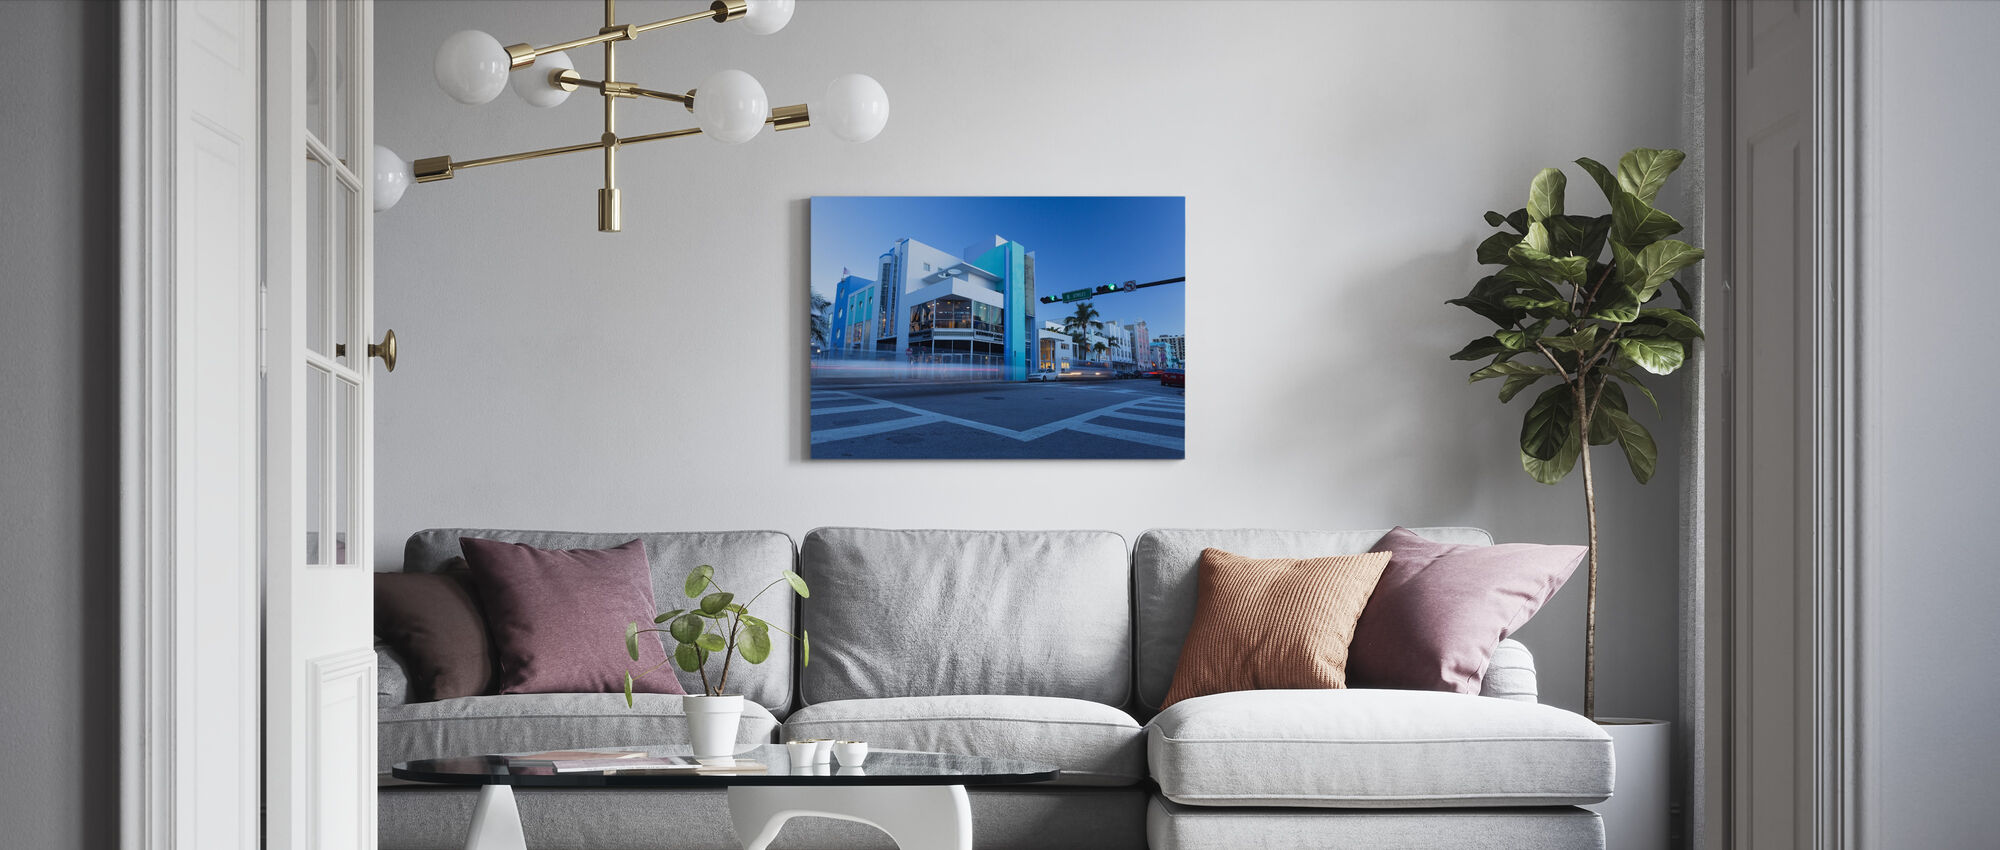 8 Street in Miami, Florida - Canvas print - Living Room